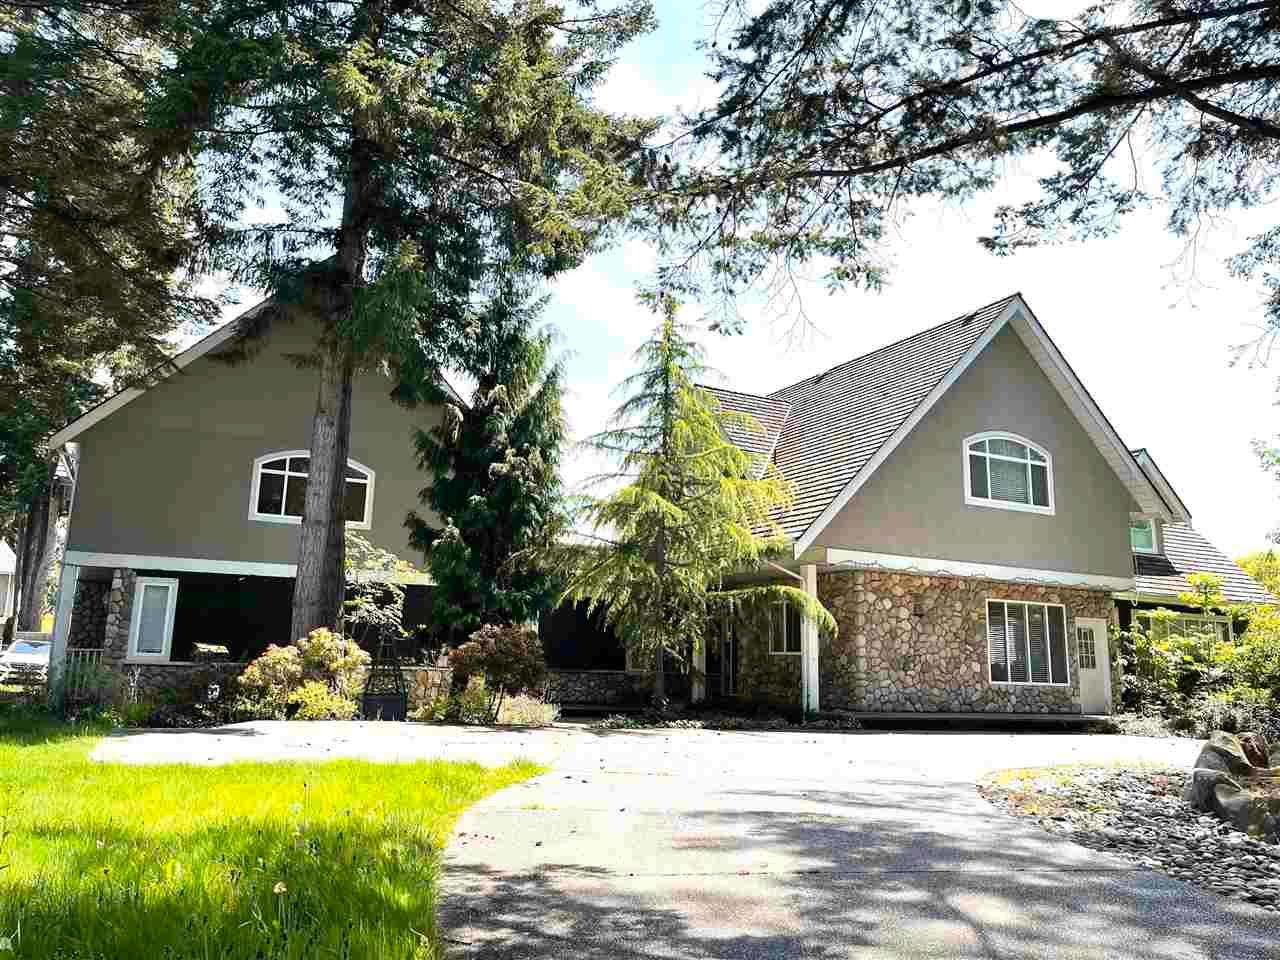 Main Photo: 3040 140 Street in Surrey: Elgin Chantrell House for sale (South Surrey White Rock)  : MLS®# R2576469